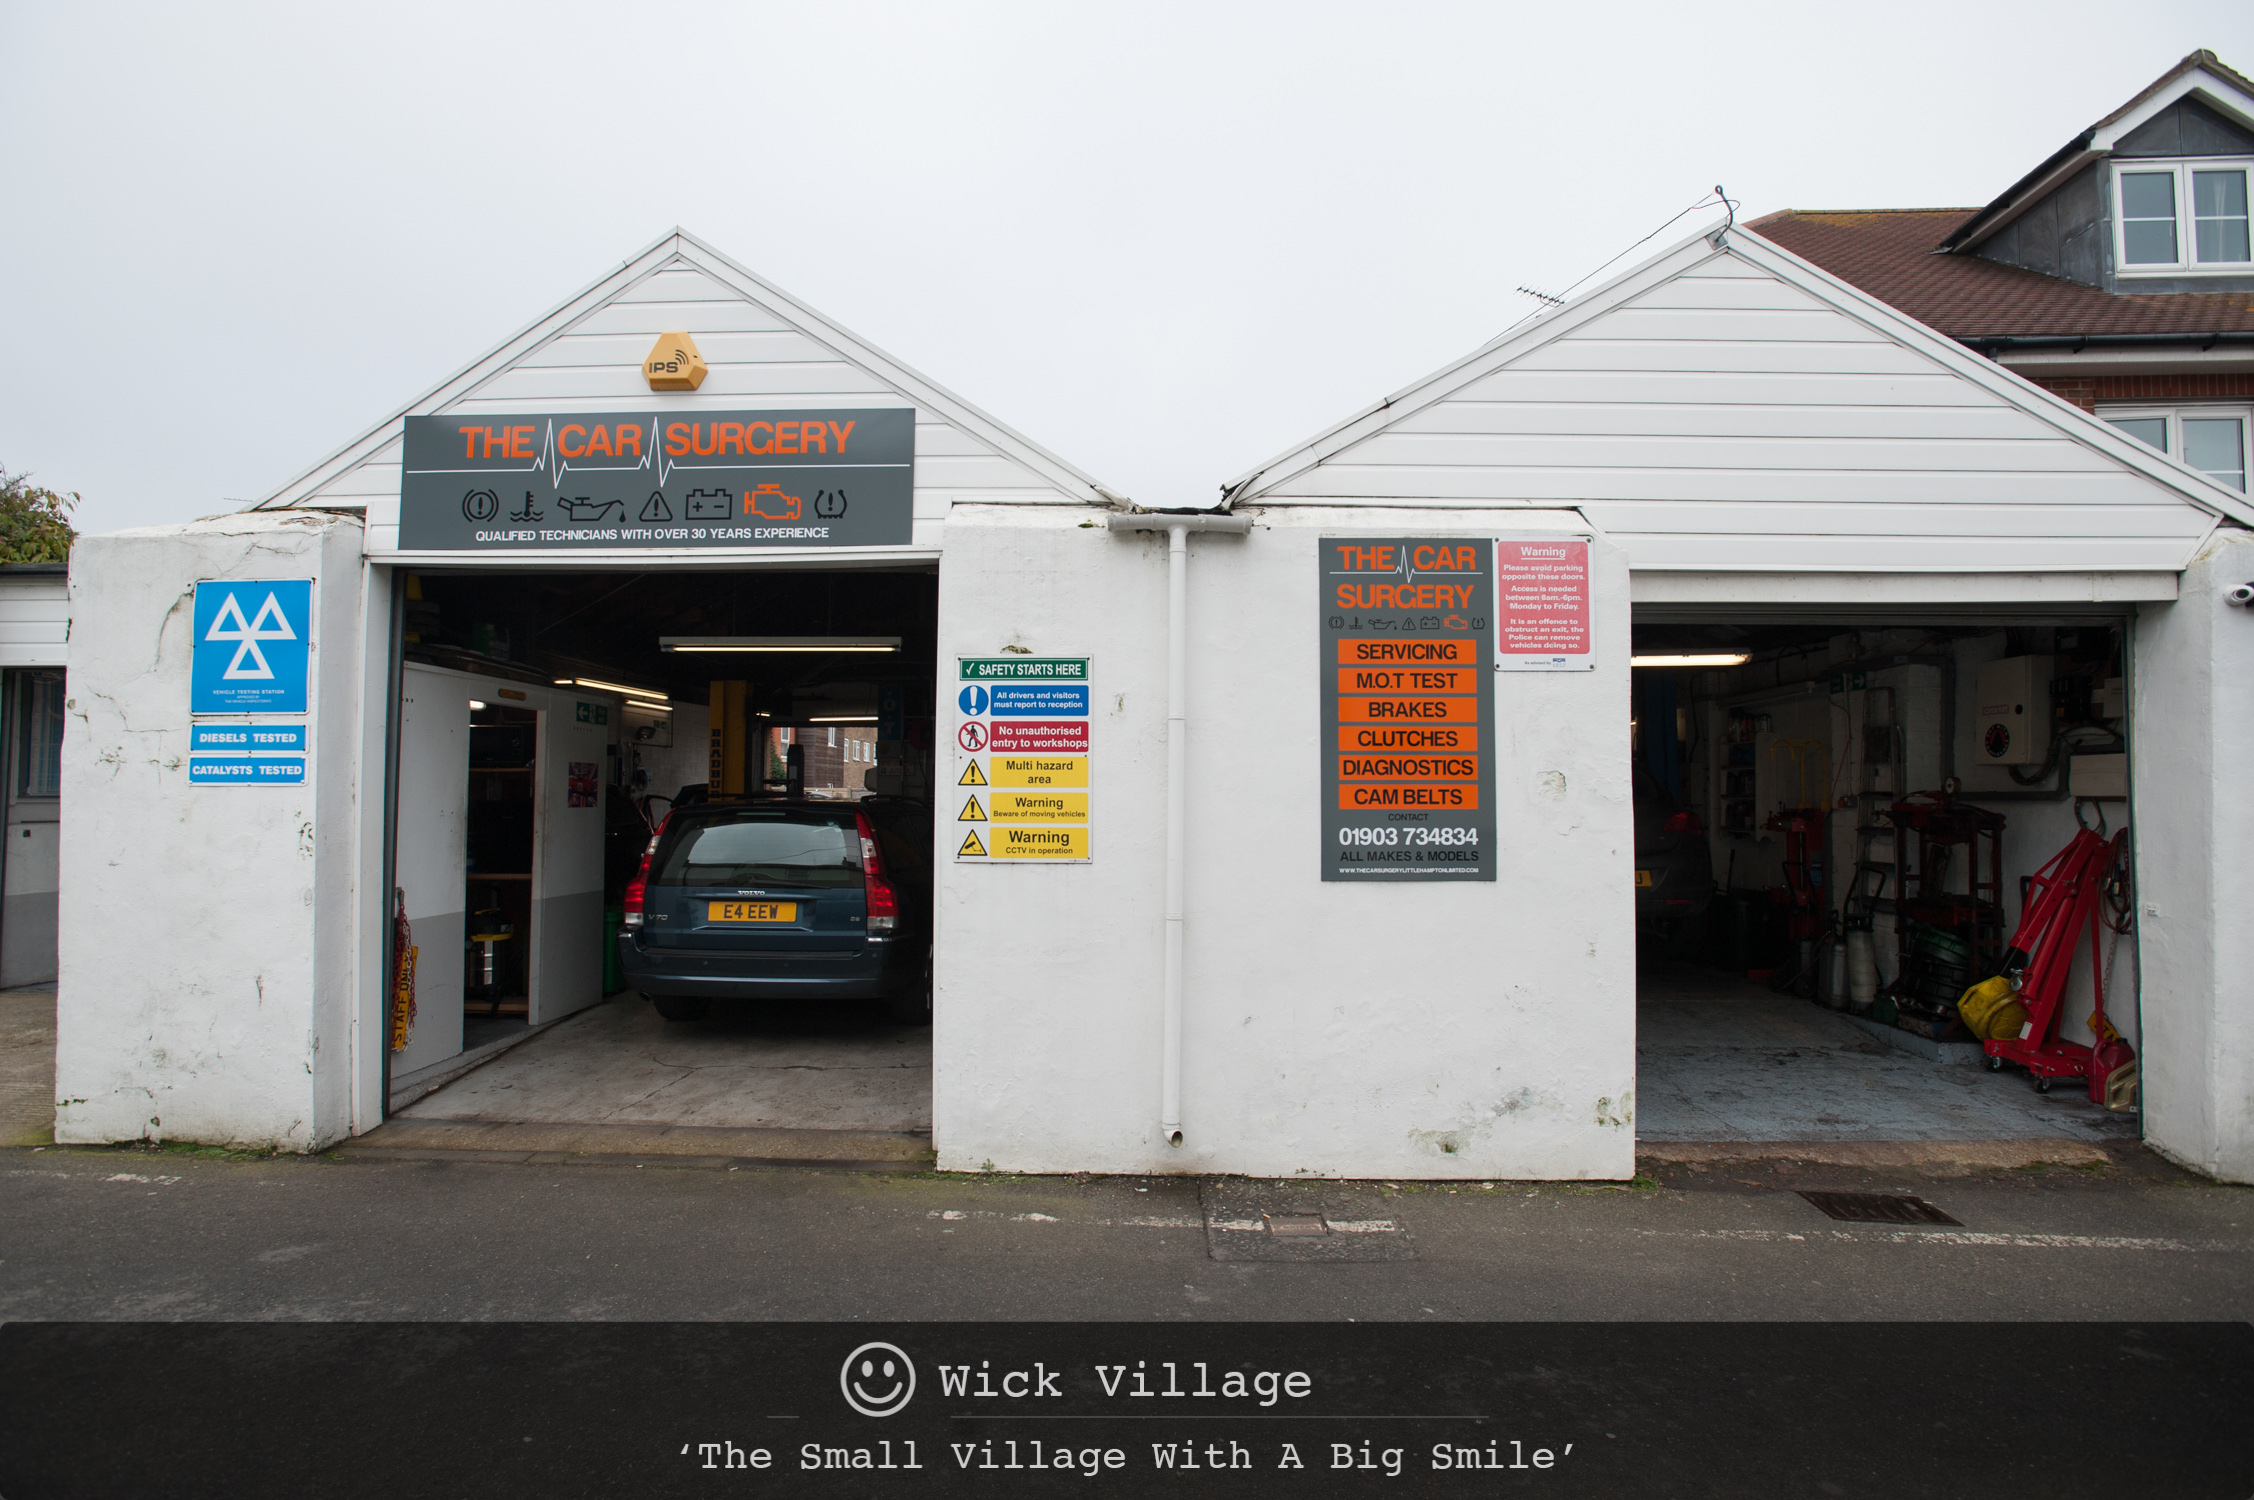 The Car Surgery, Wick Village, Littlehampton.